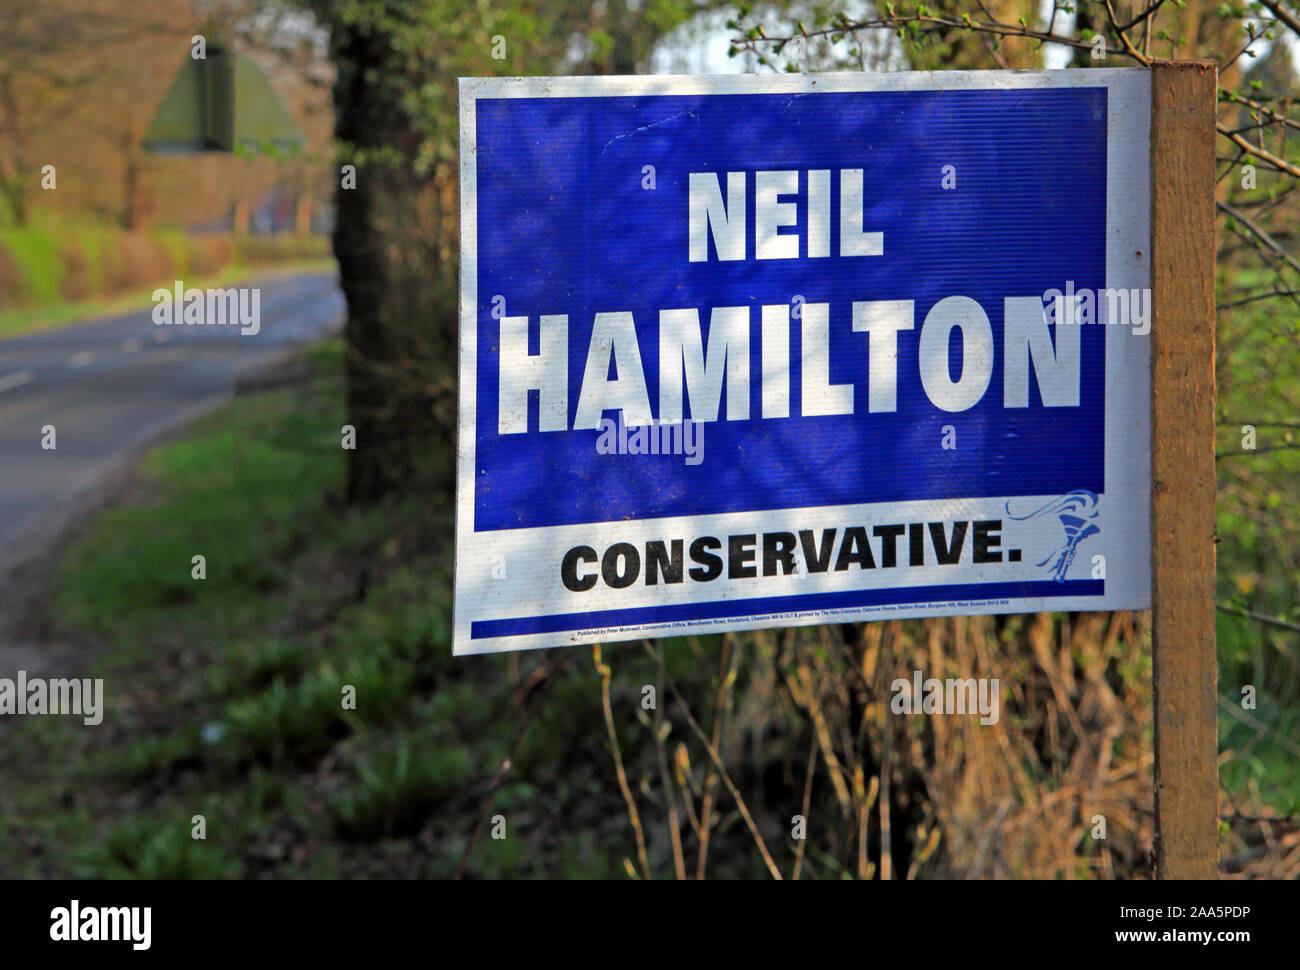 Neil Hamilton, Vote Conservative sign, General Election Knutsford Tatton Ward, Cheshire, North West England, UK Stock Photo